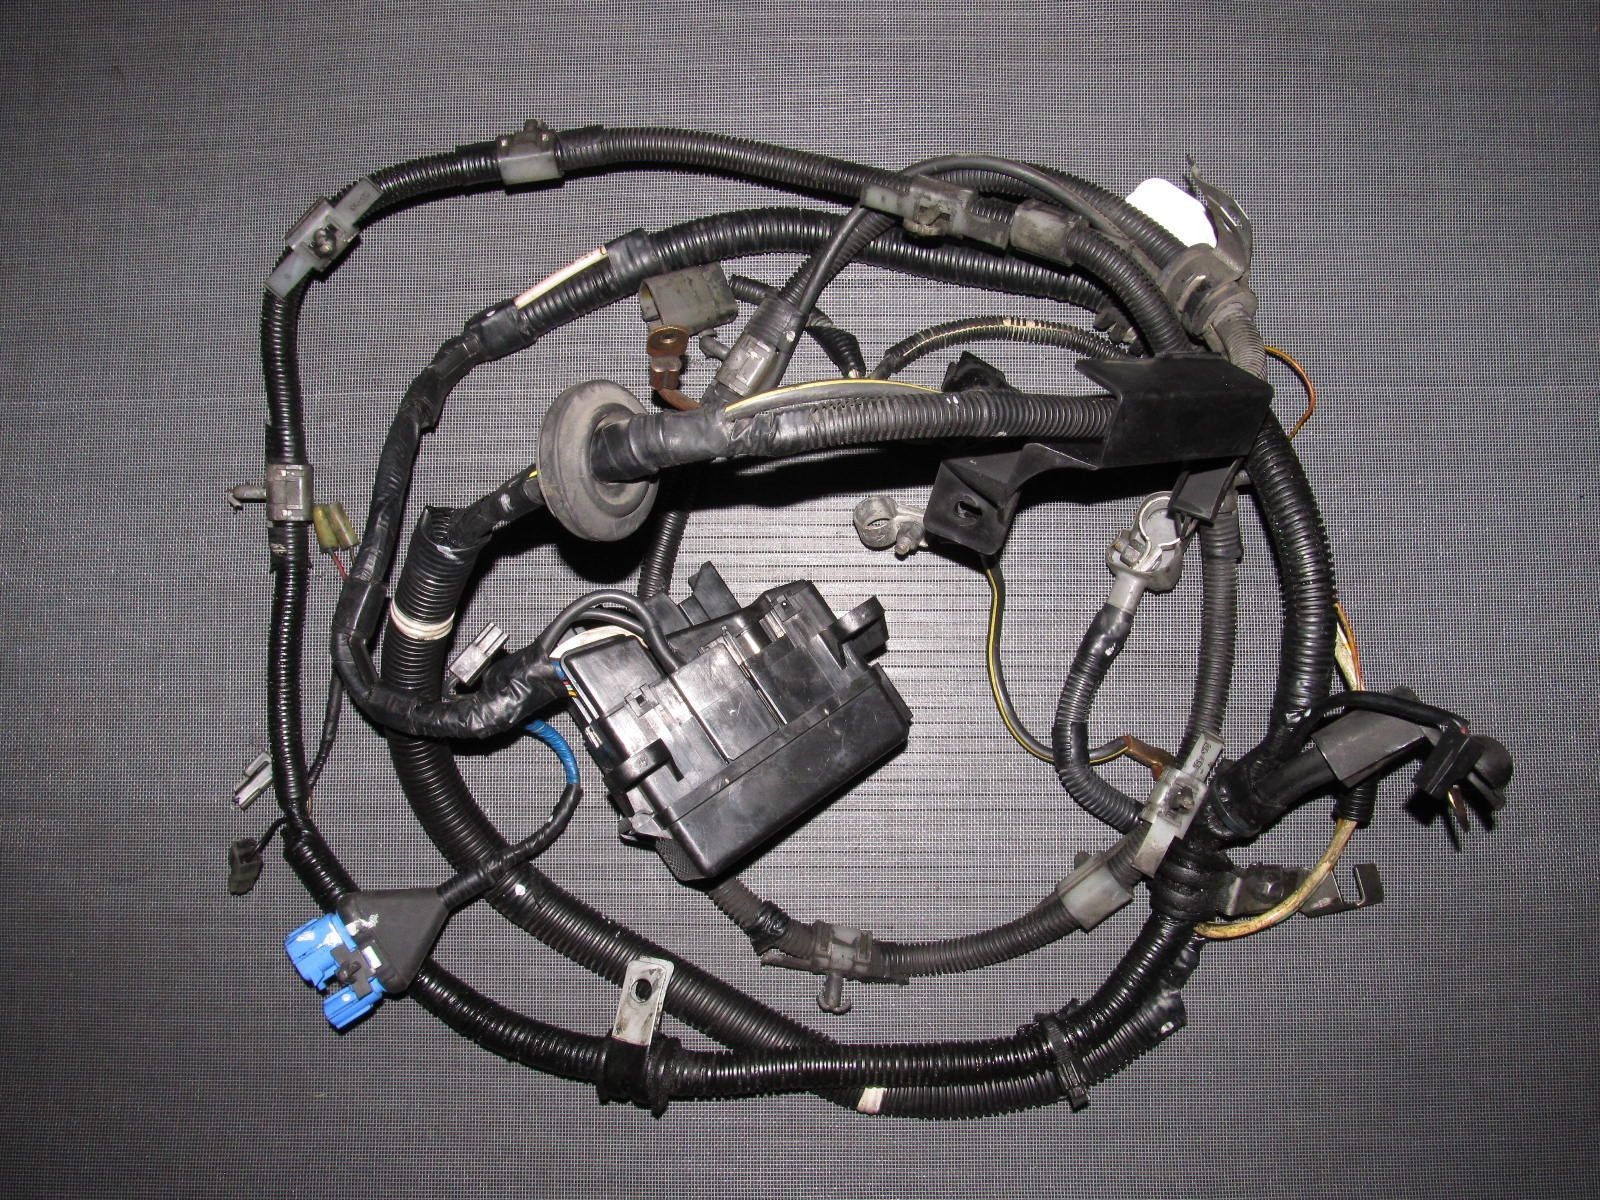 90 91 92 93 mazda miata fuse box transmission engine wiring harness [ 1600 x 1200 Pixel ]